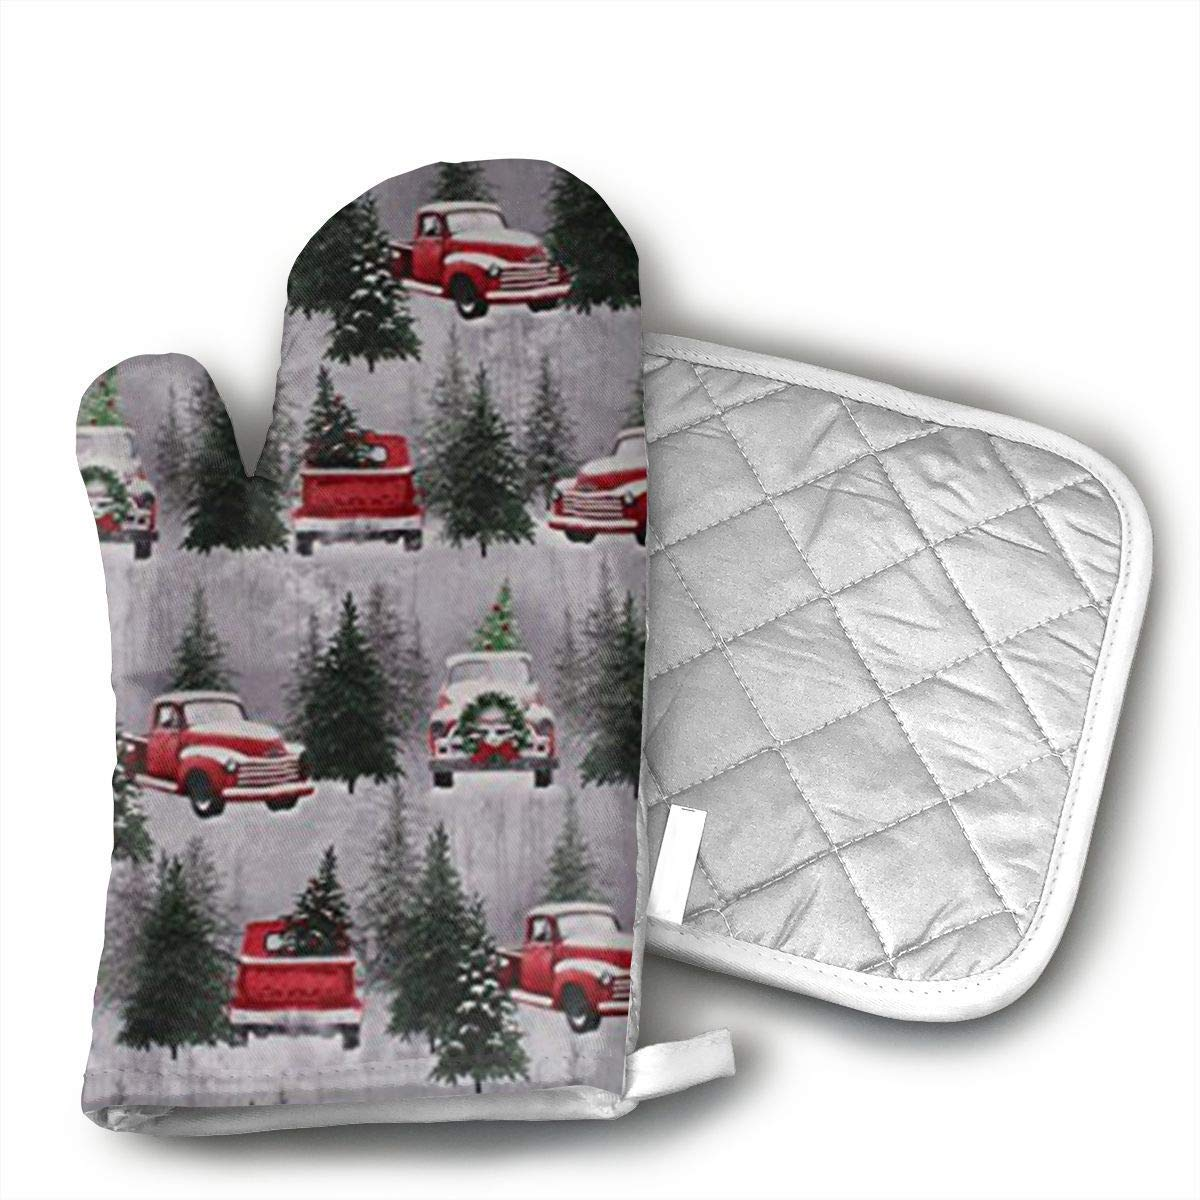 Christmas Tree Farm Trucks Retro Cotton Oven Mitts and Pot Holders Set with Polyester Cotton Non-Slip Grip, Heat Resistant, Oven Gloves for BBQ Cooking Baking, Grilling